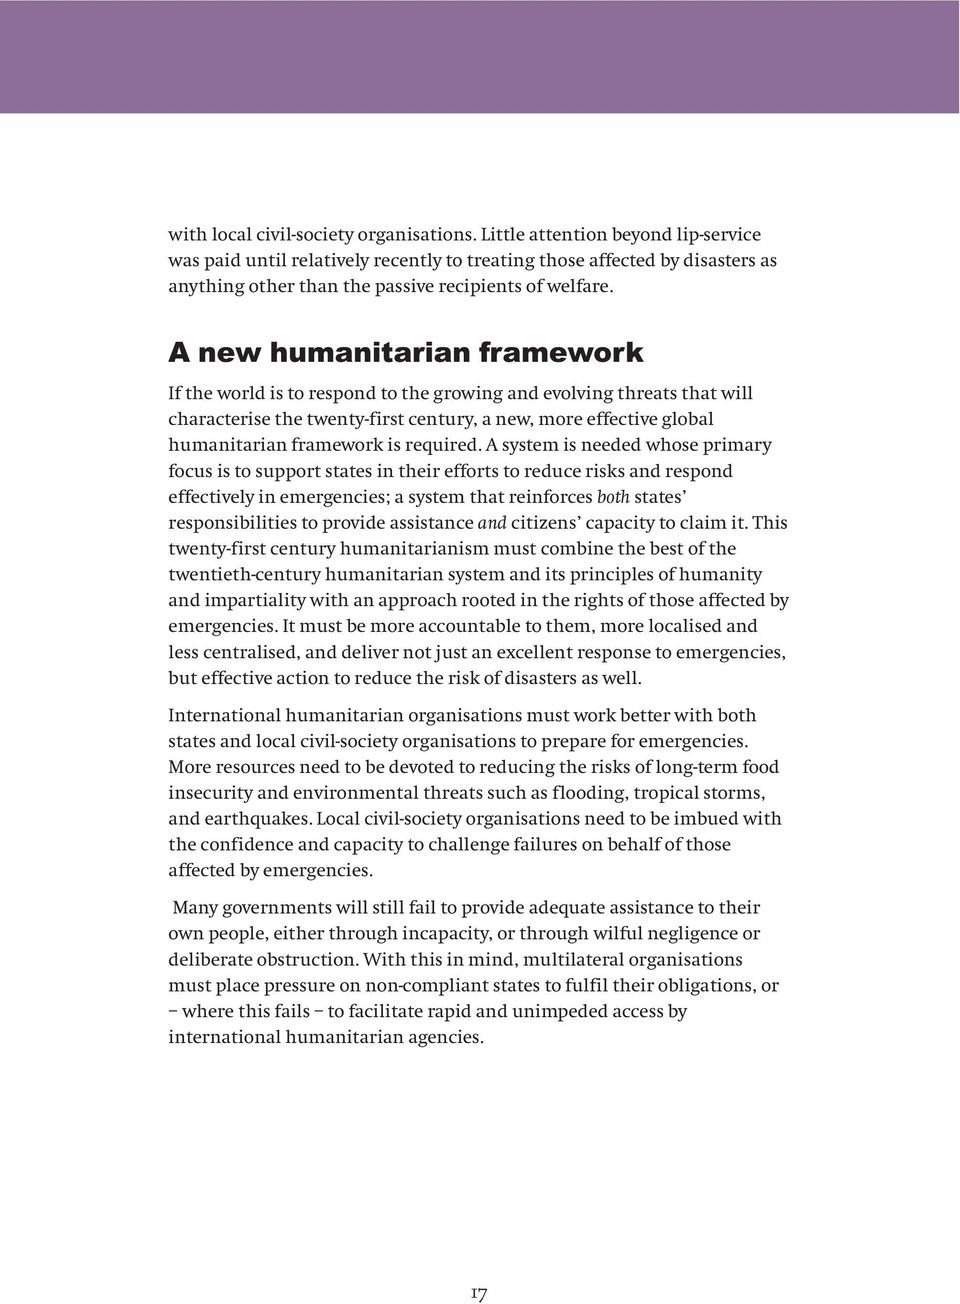 A new humanitarian framework If the world is to respond to the growing and evolving threats that will characterise the twenty-first century, a new, more effective global humanitarian framework is